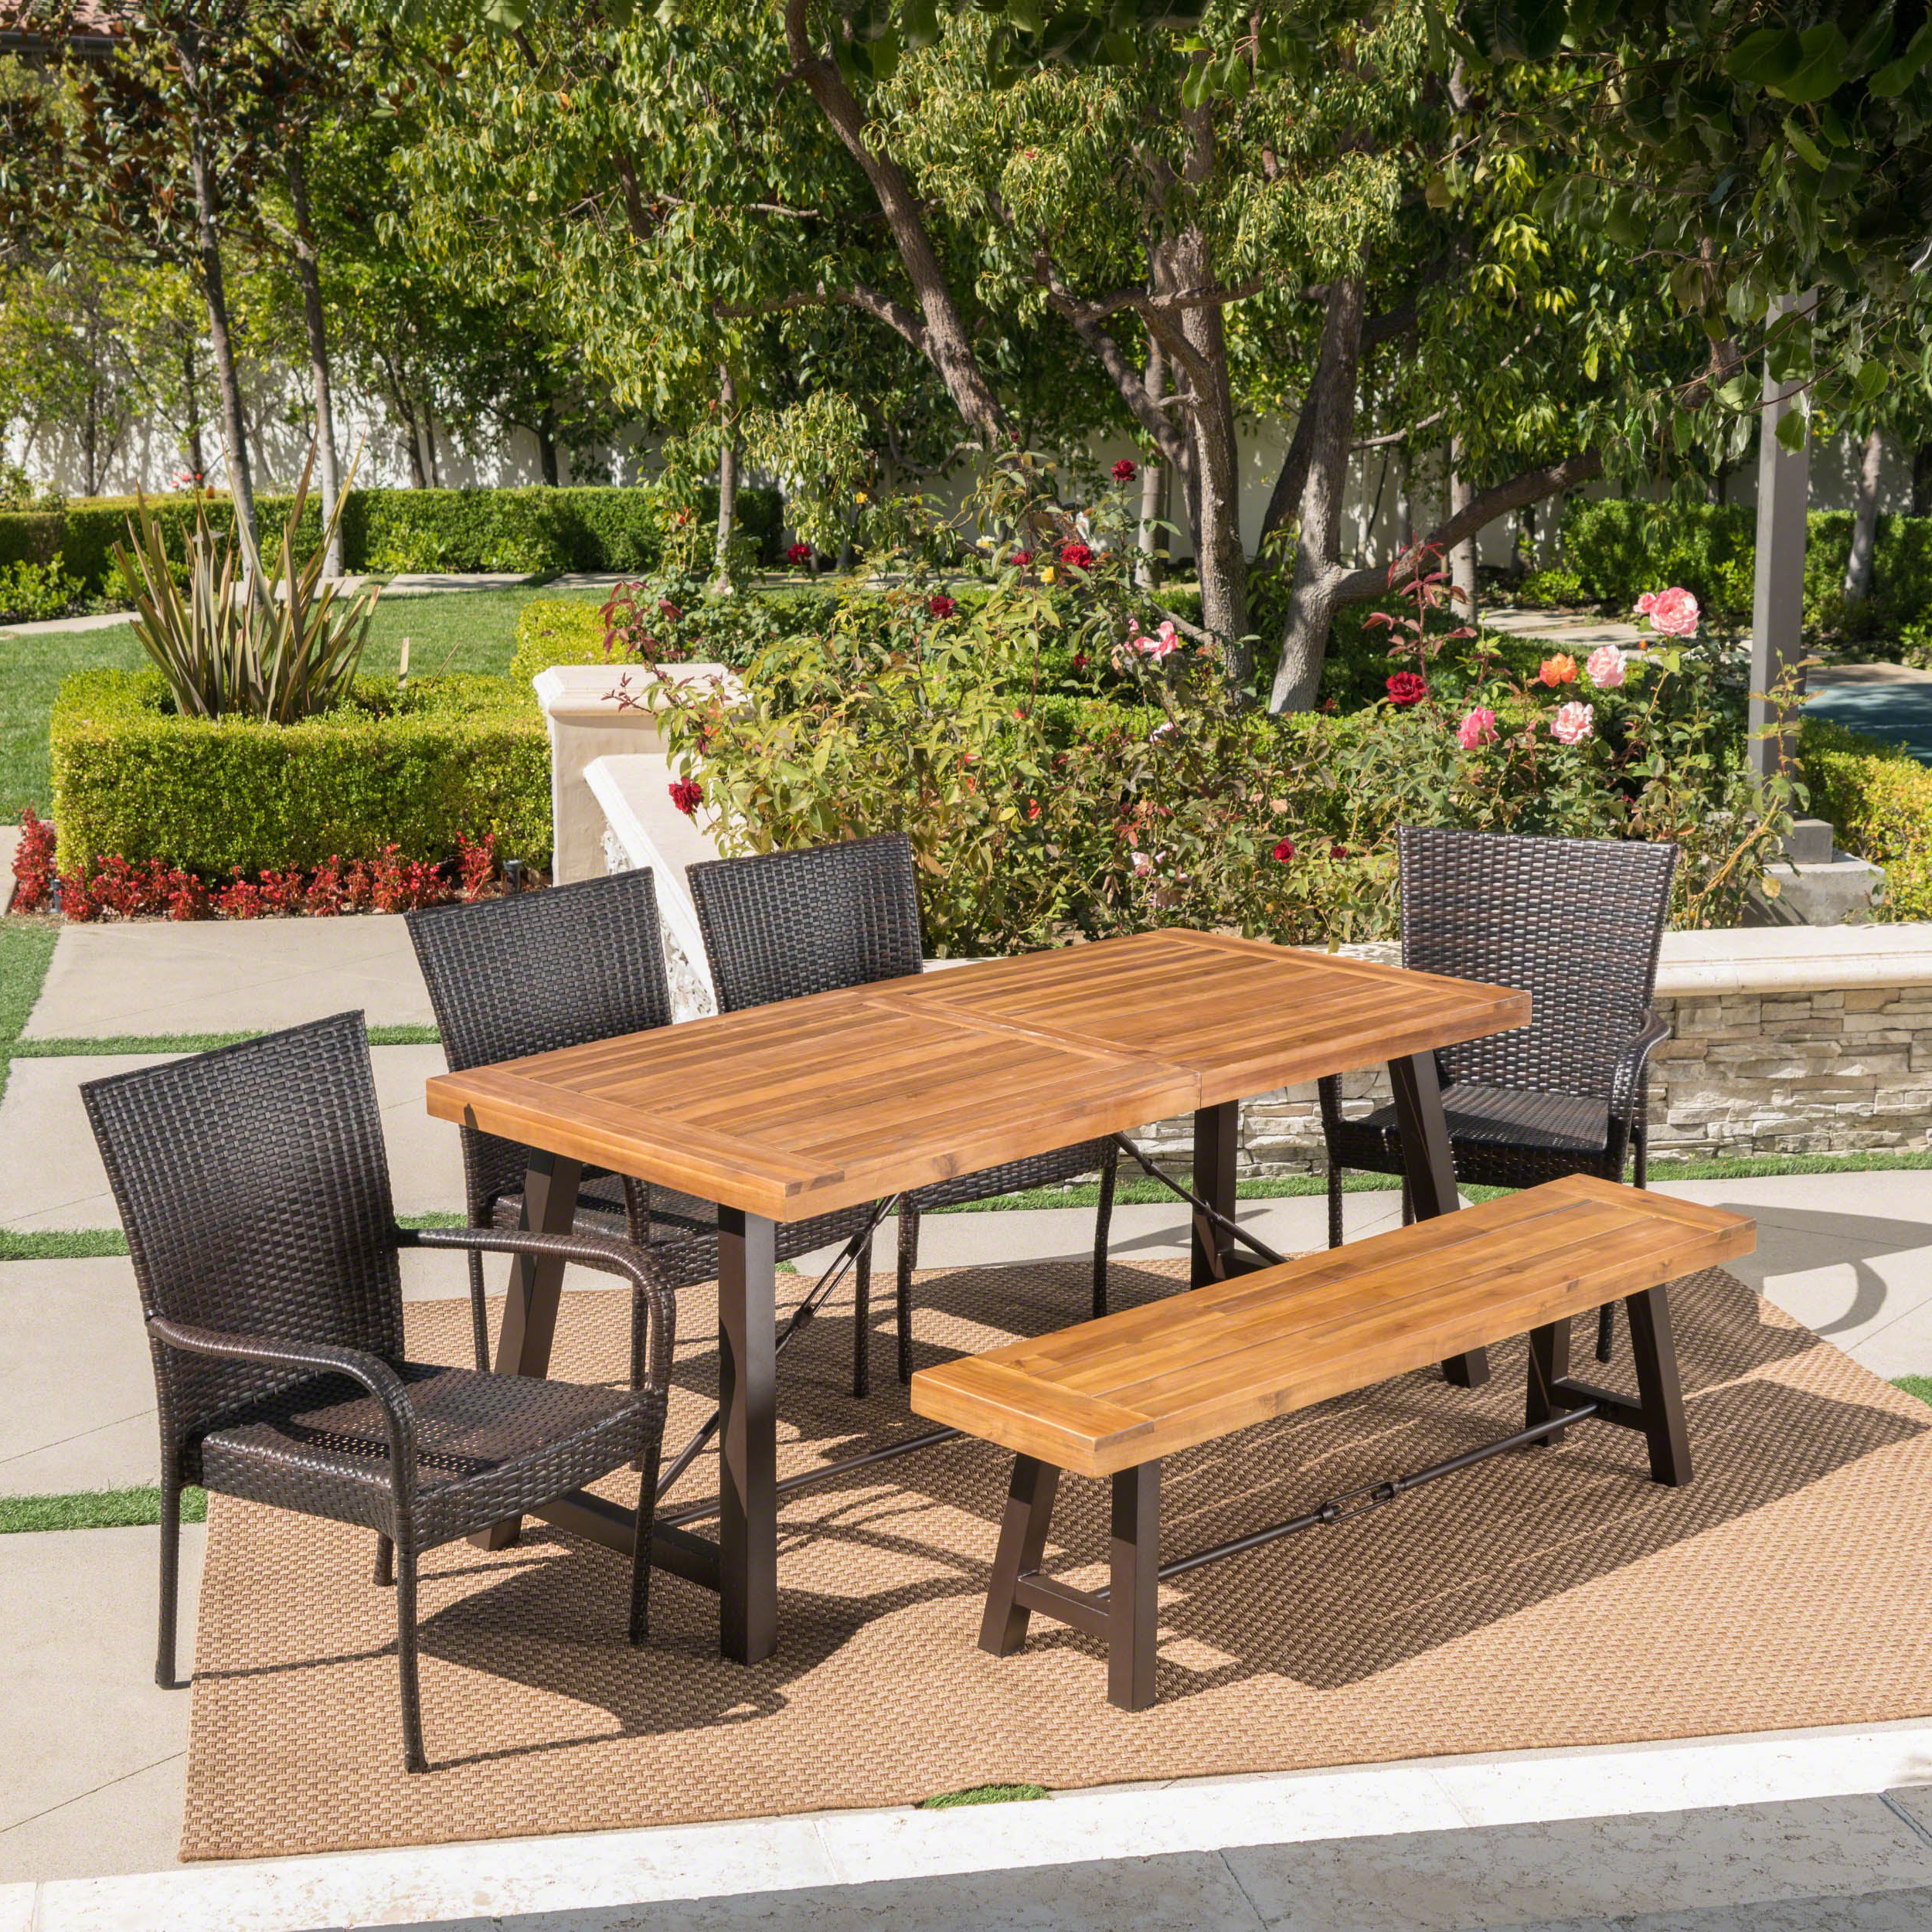 Well Liked Appleton Outdoor 6 Piece Dining Set Intended For Springfield 3 Piece Dining Sets (View 11 of 20)